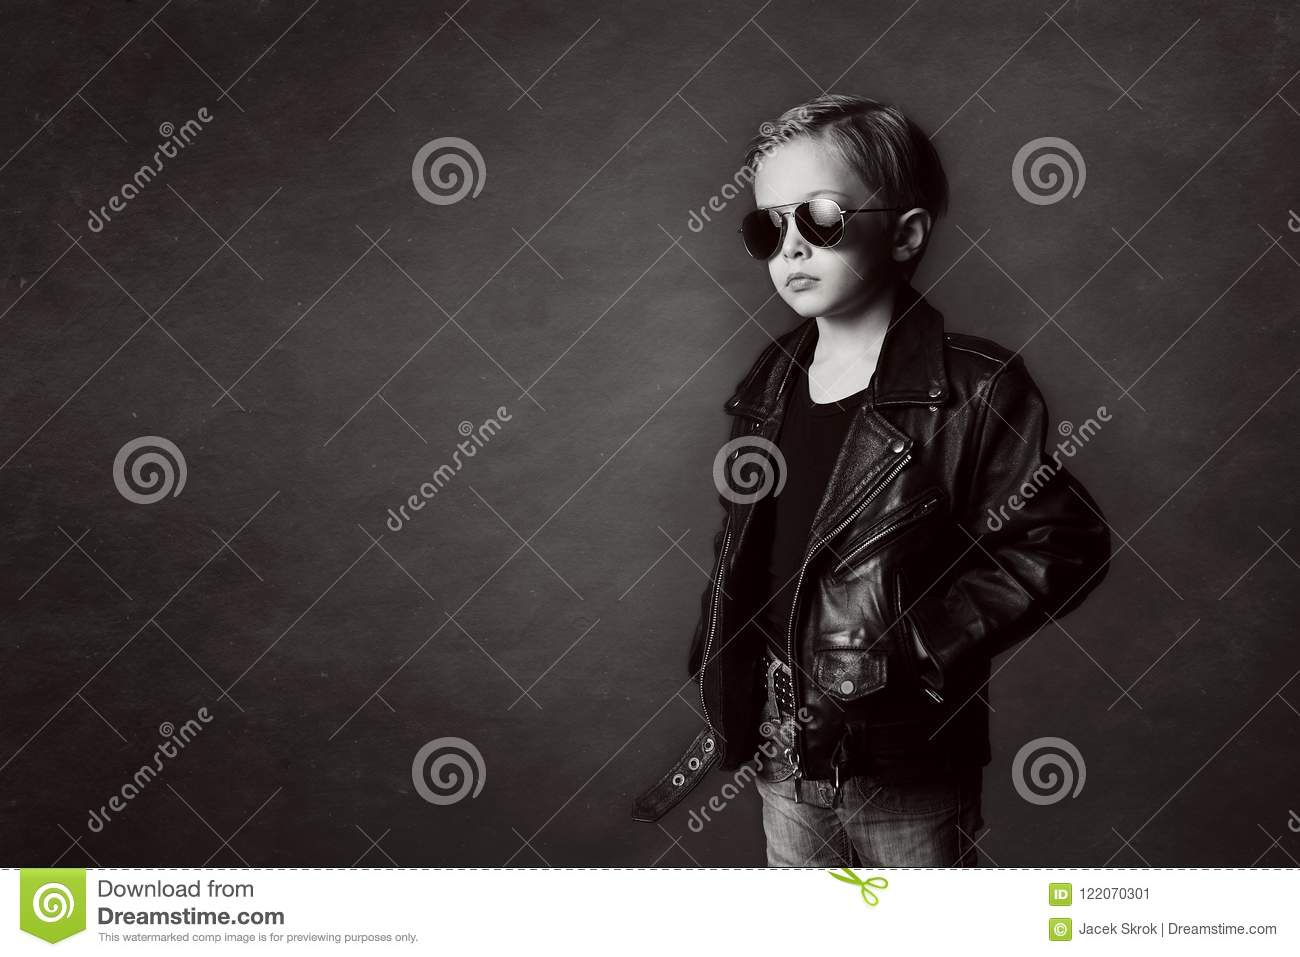 A Handsome Sad Boy In Leather Jacket And Jeans On A Black